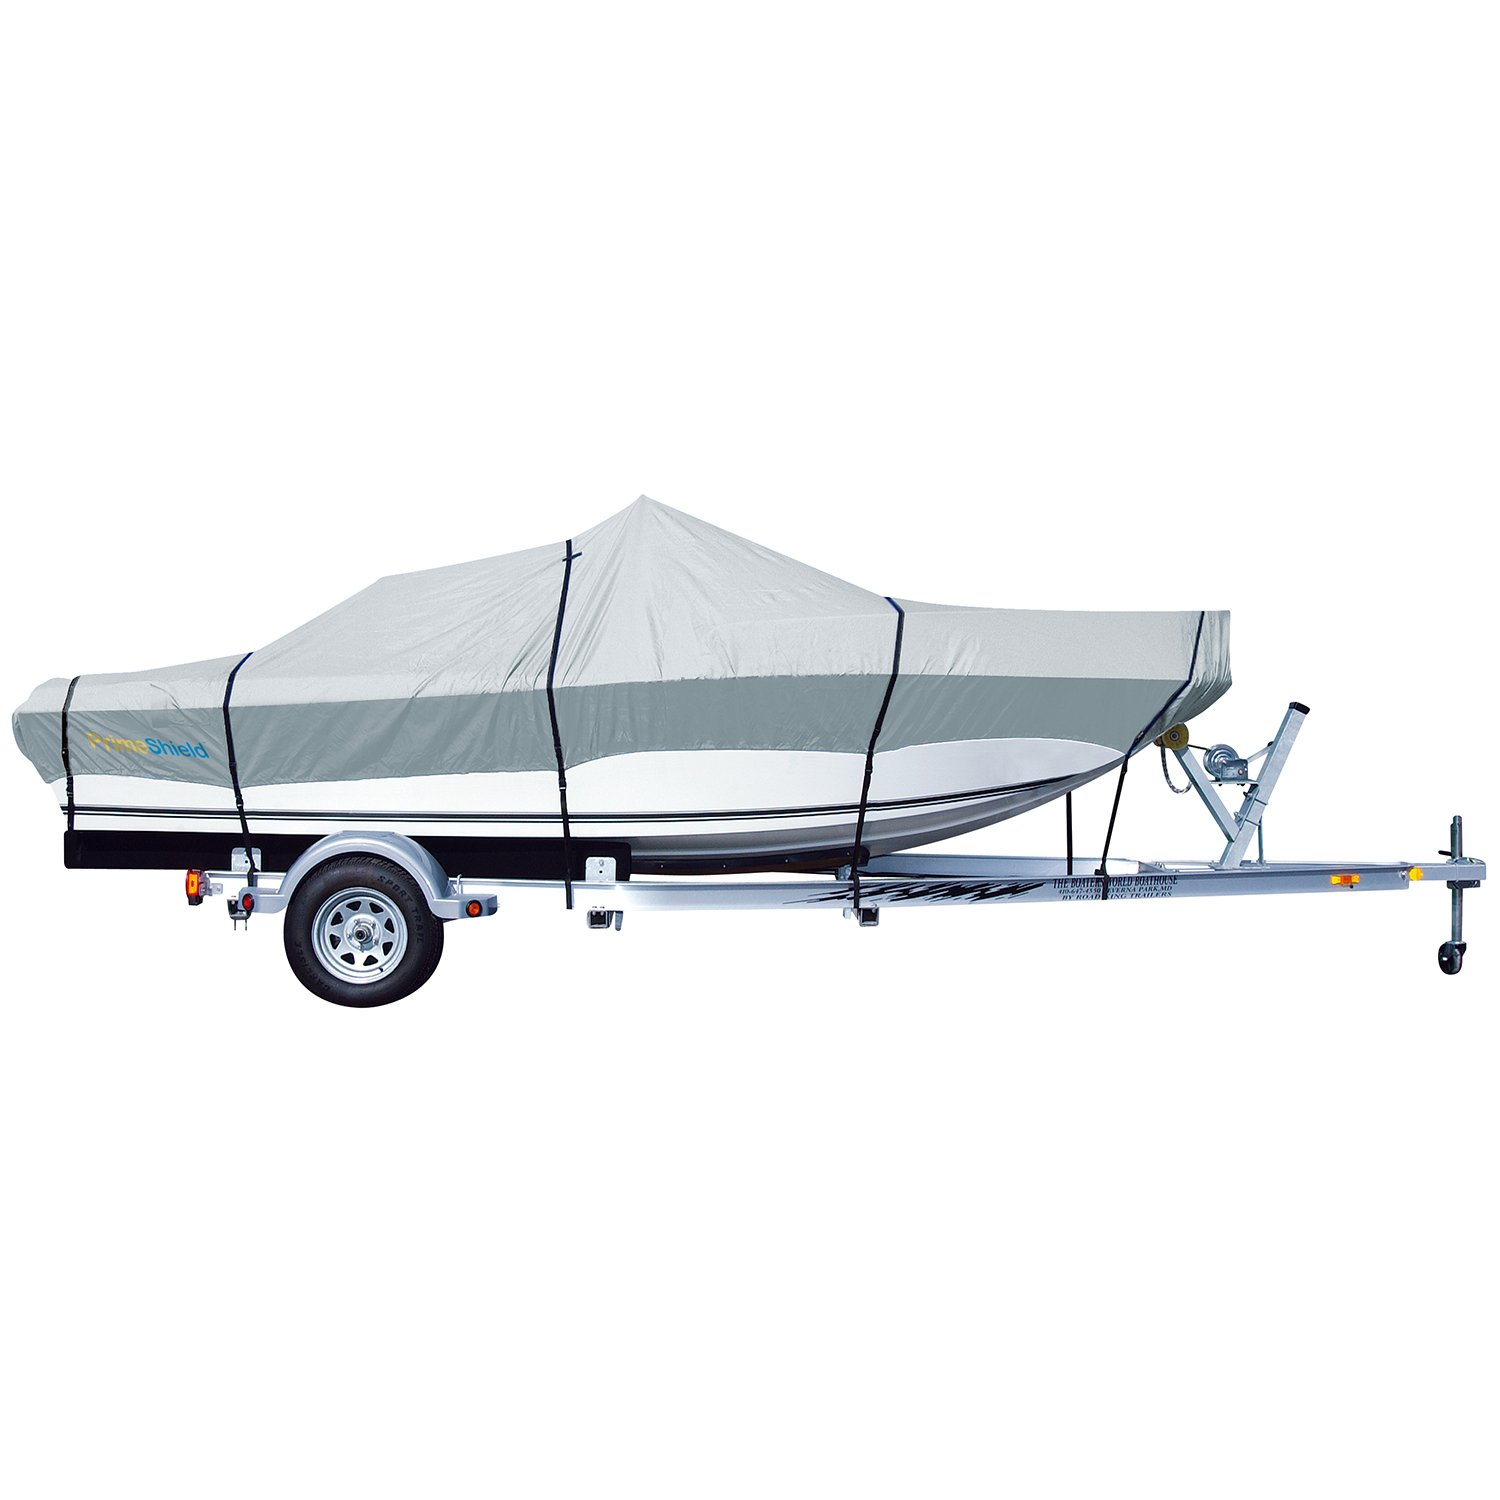 PrimeShield Heavy Duty Boat Cover 600D Waterproof for V-Hull Runabouts 16' - 18.5' Length up to 98'' Width Grey by PrimeShield